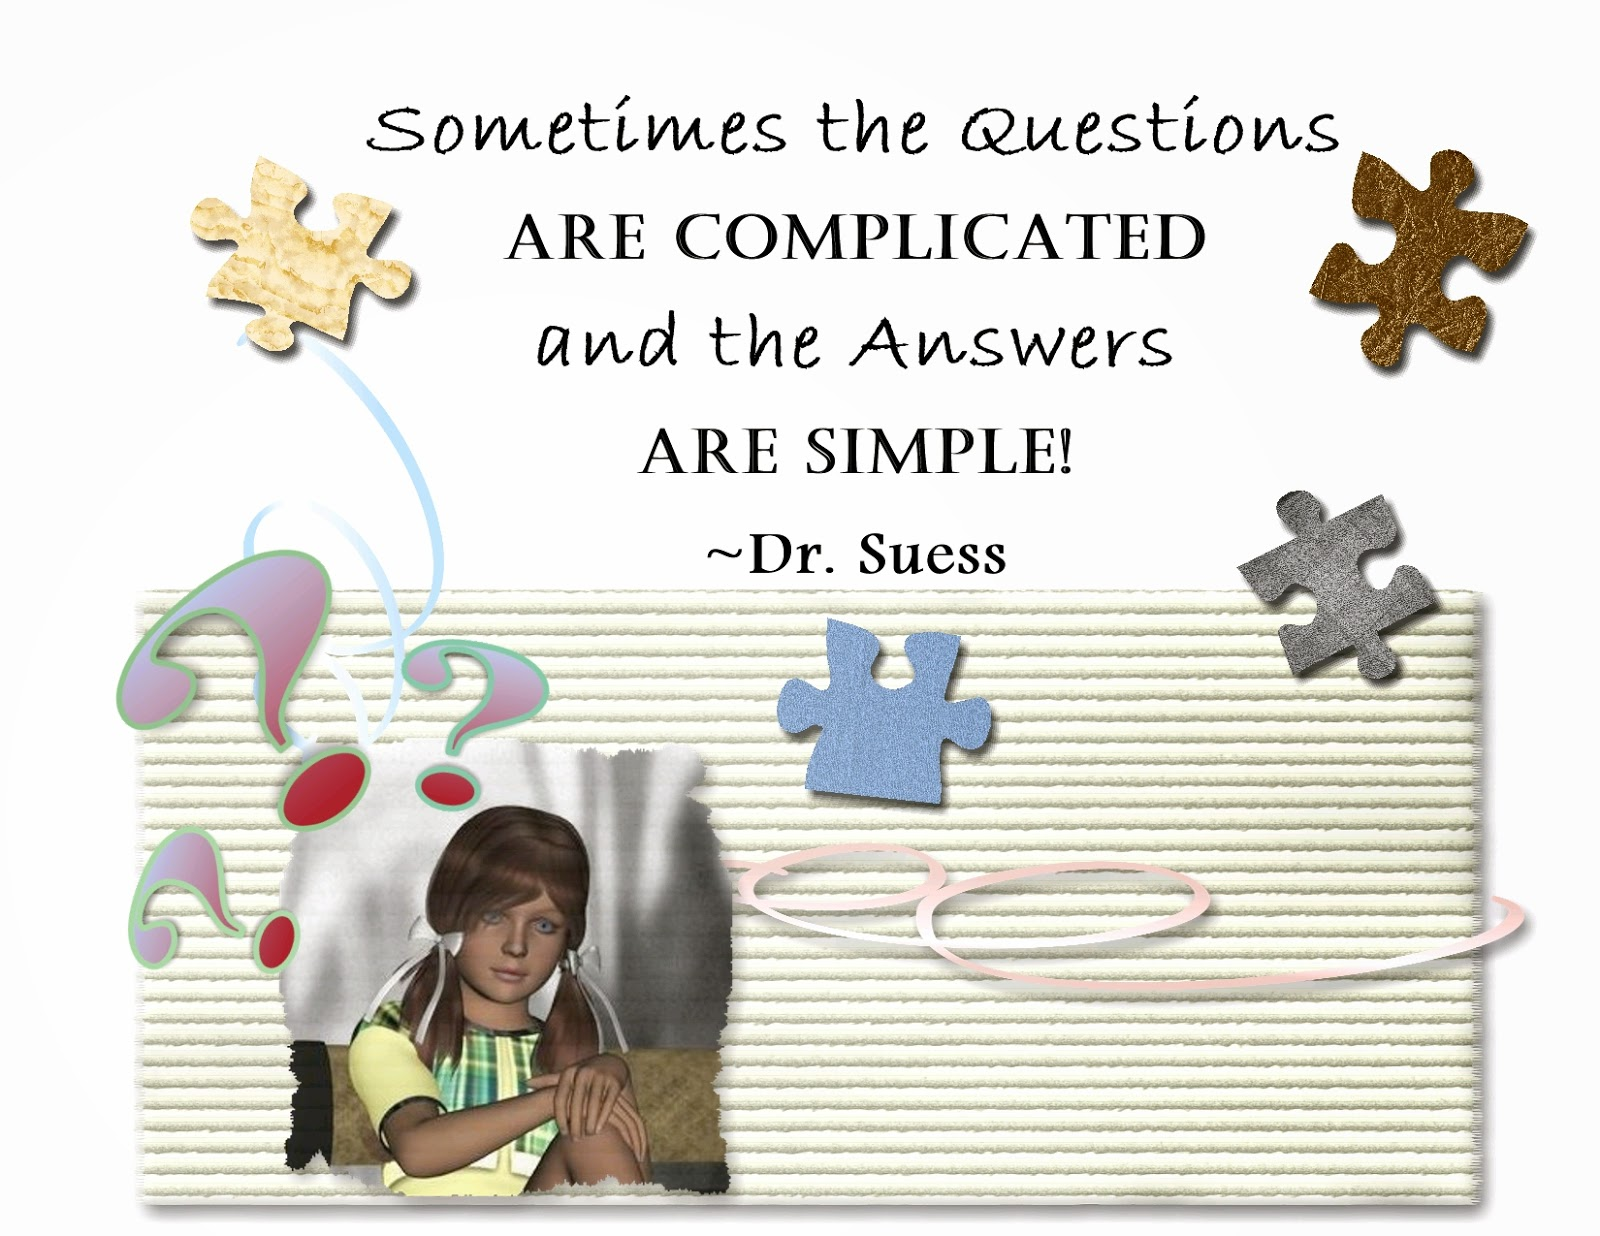 Questions are Complicated & Answers are Simple Image